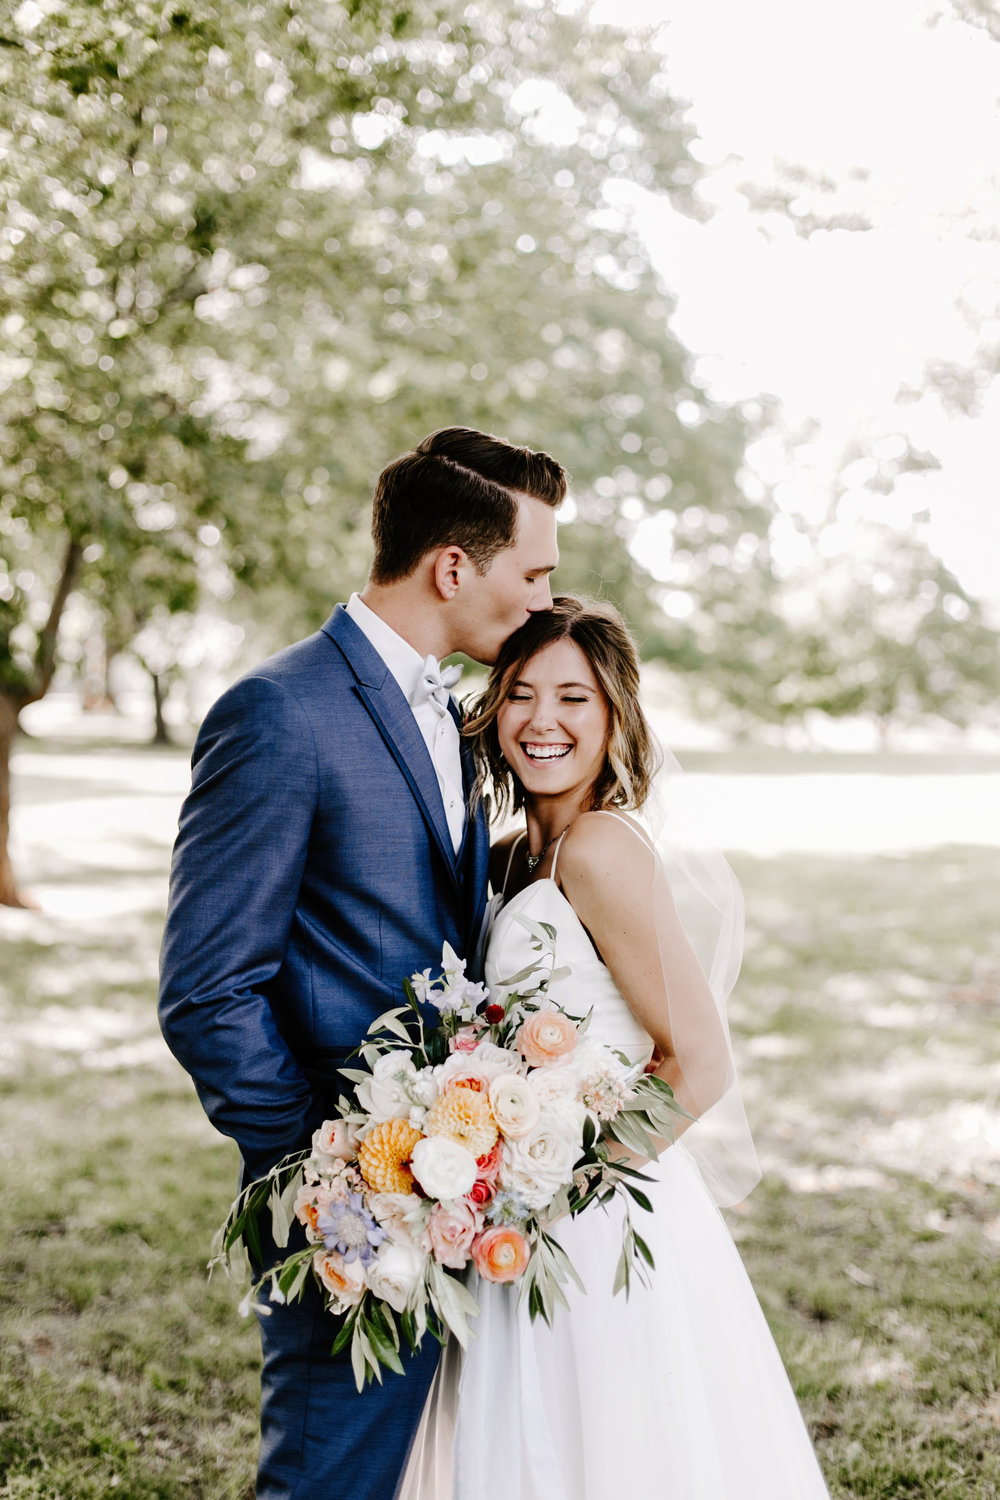 Claire and James Indianapolis Wedding The Tube Factory Emily Elyse Wehner Photography LLC-99.jpg